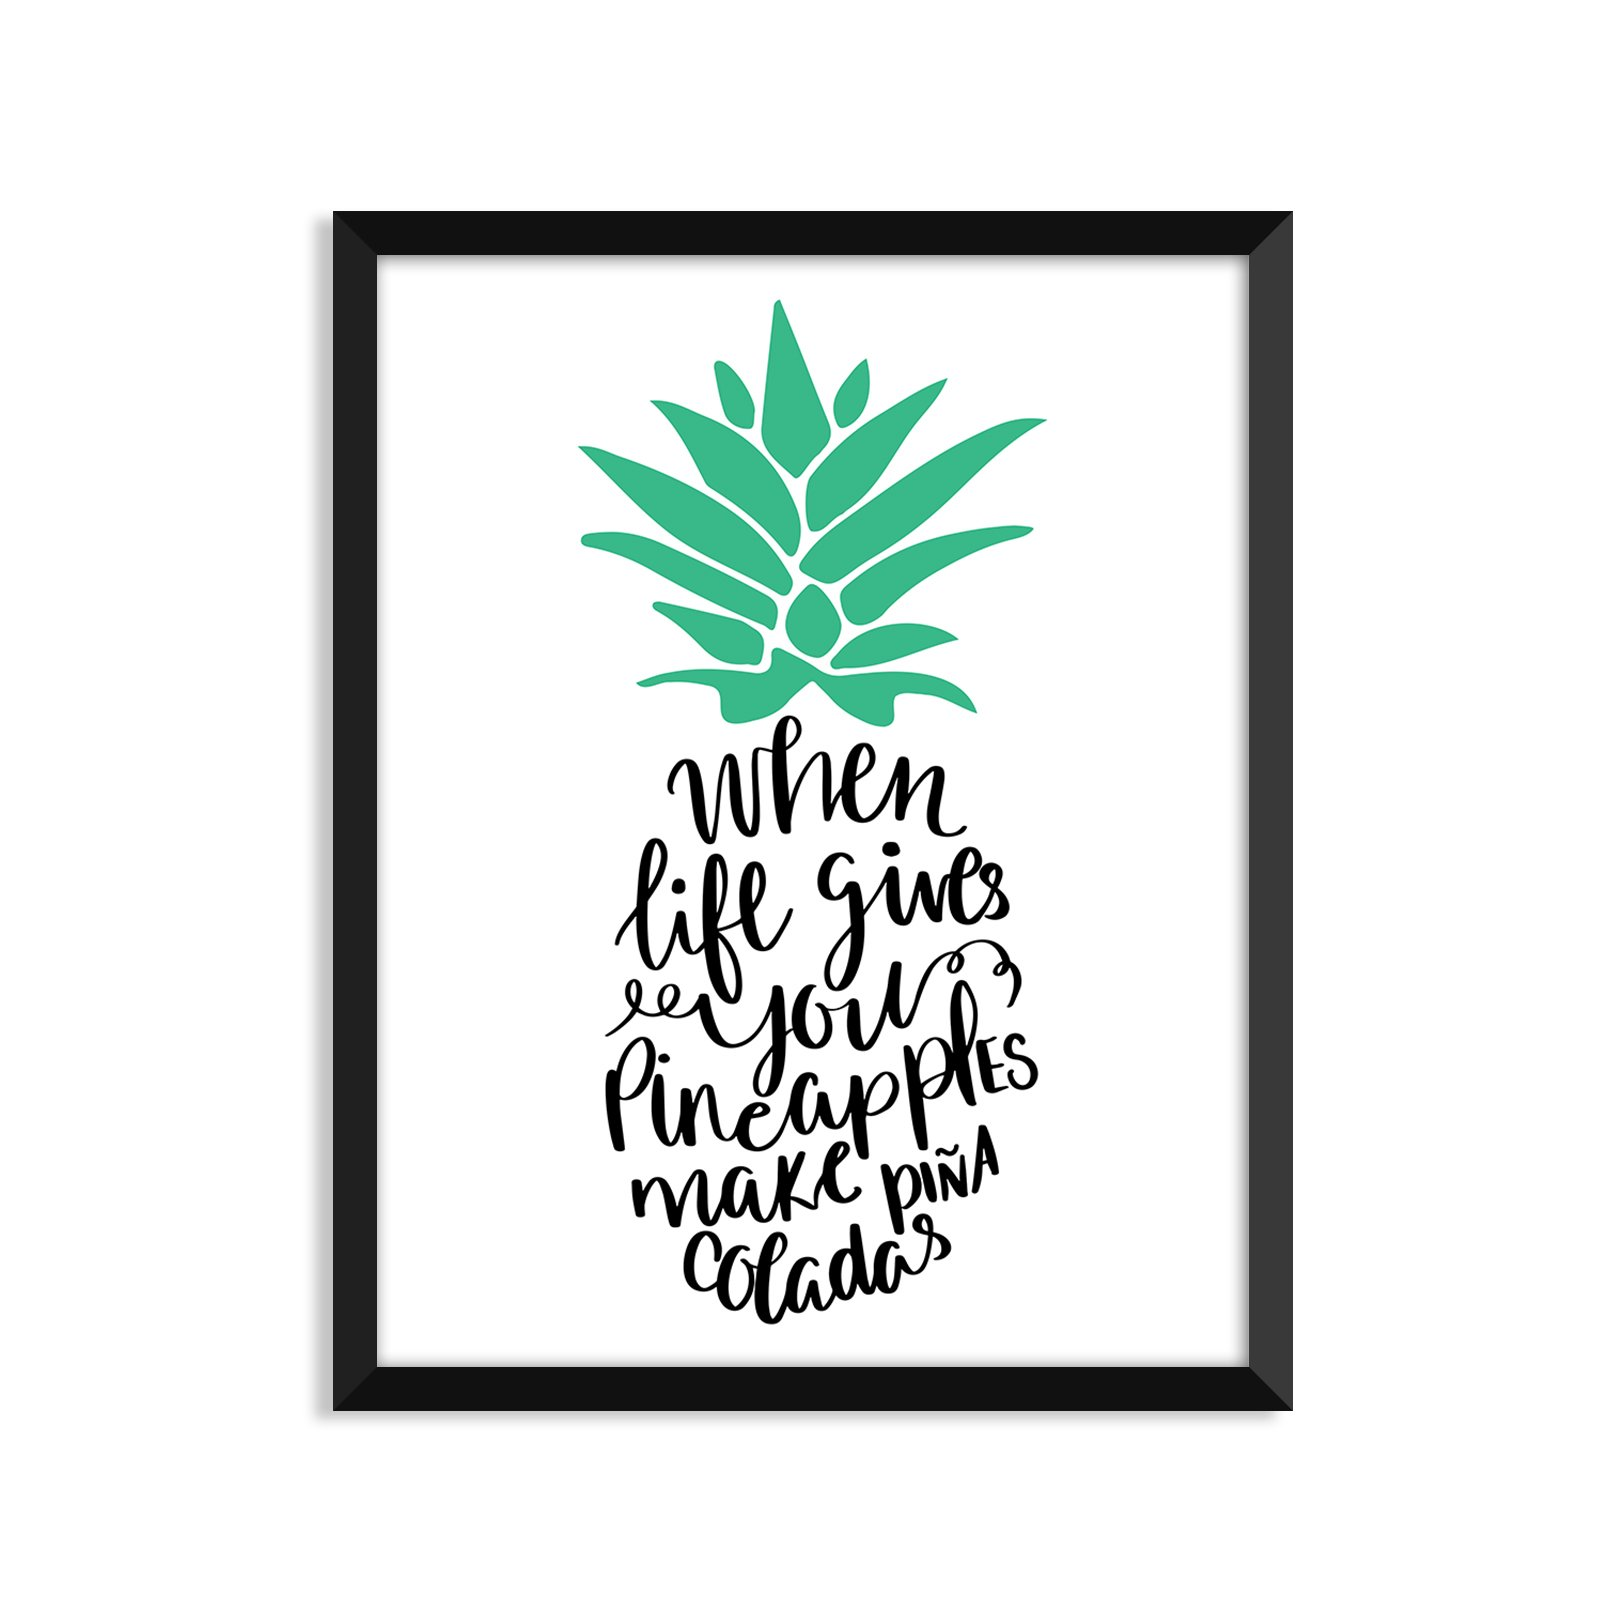 When Life Gives You Pineapples, Inspiration Quote, Funny, Adult, Minimalist Poster, Home Decor, College Dorm Room Decorations, Wall Art